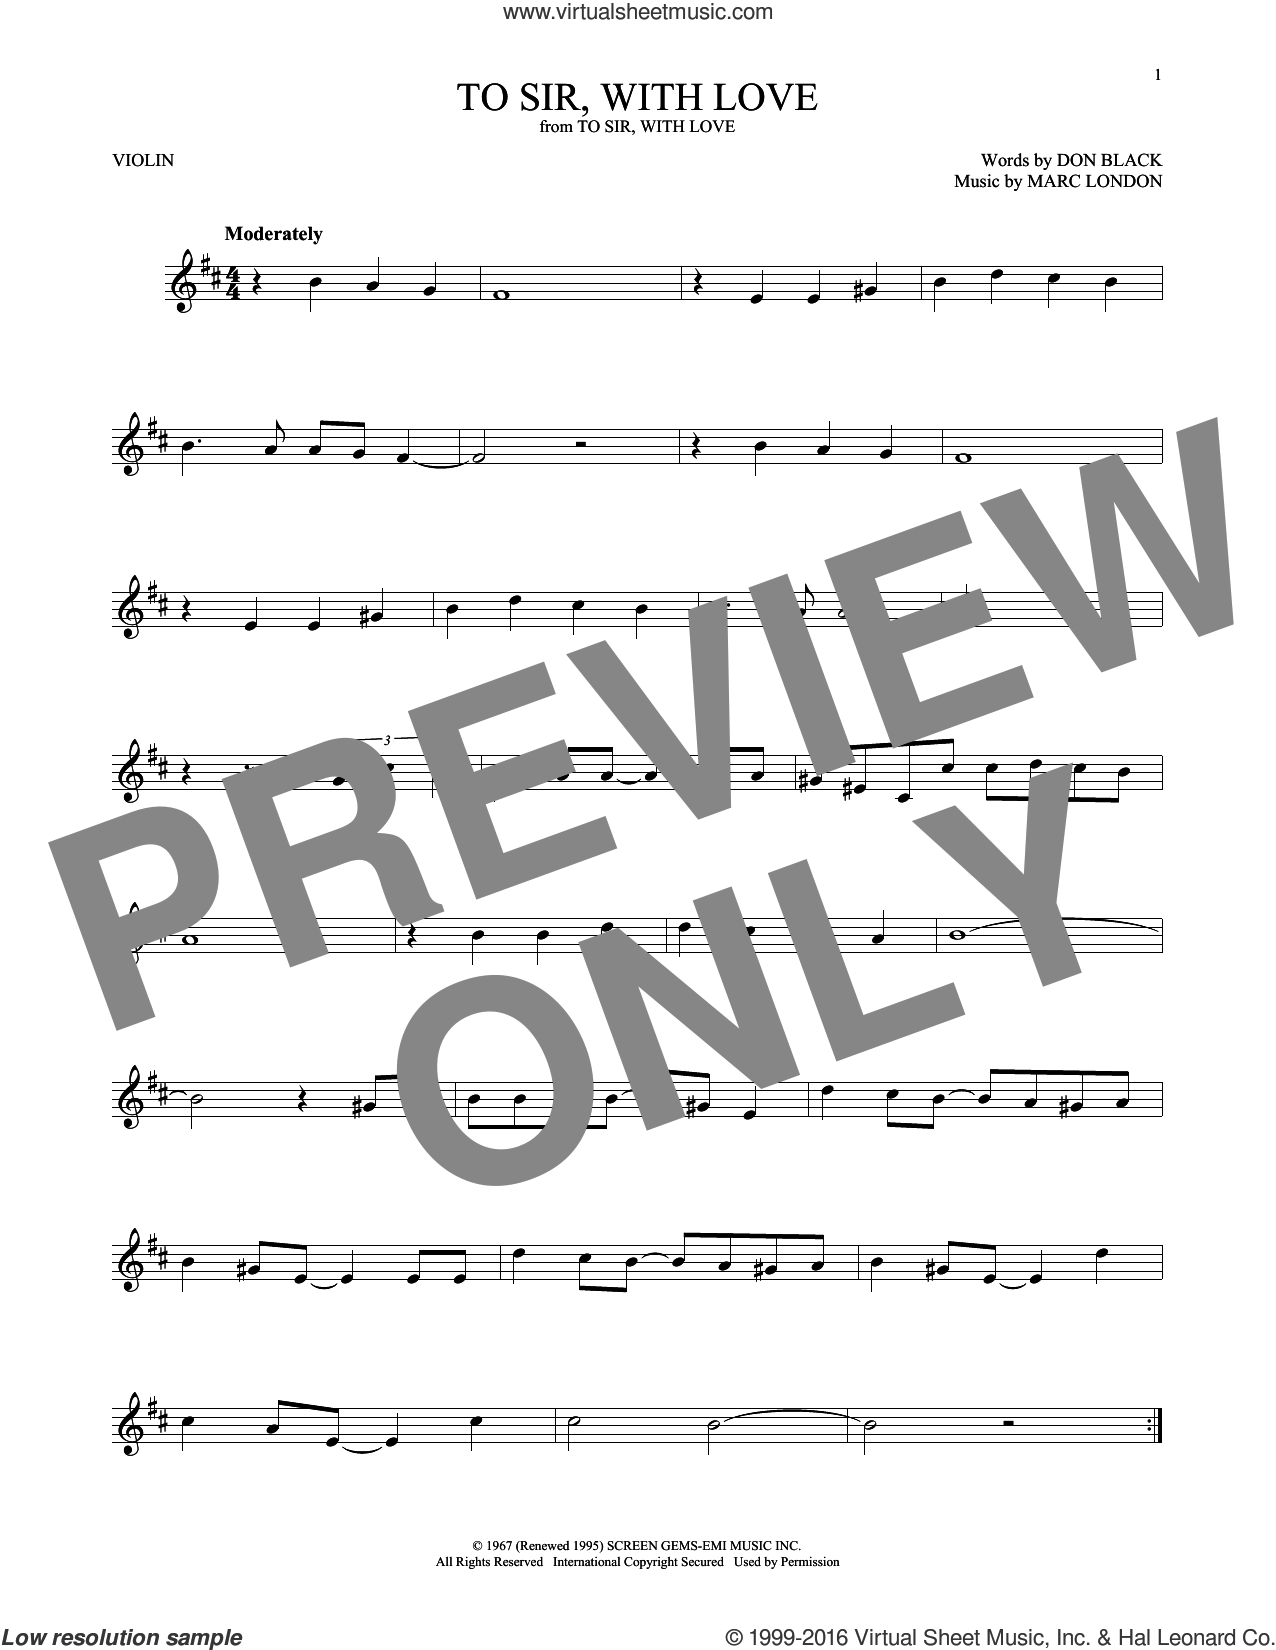 To Sir, With Love sheet music for violin solo by Lulu, Don Black and Marc London, intermediate skill level